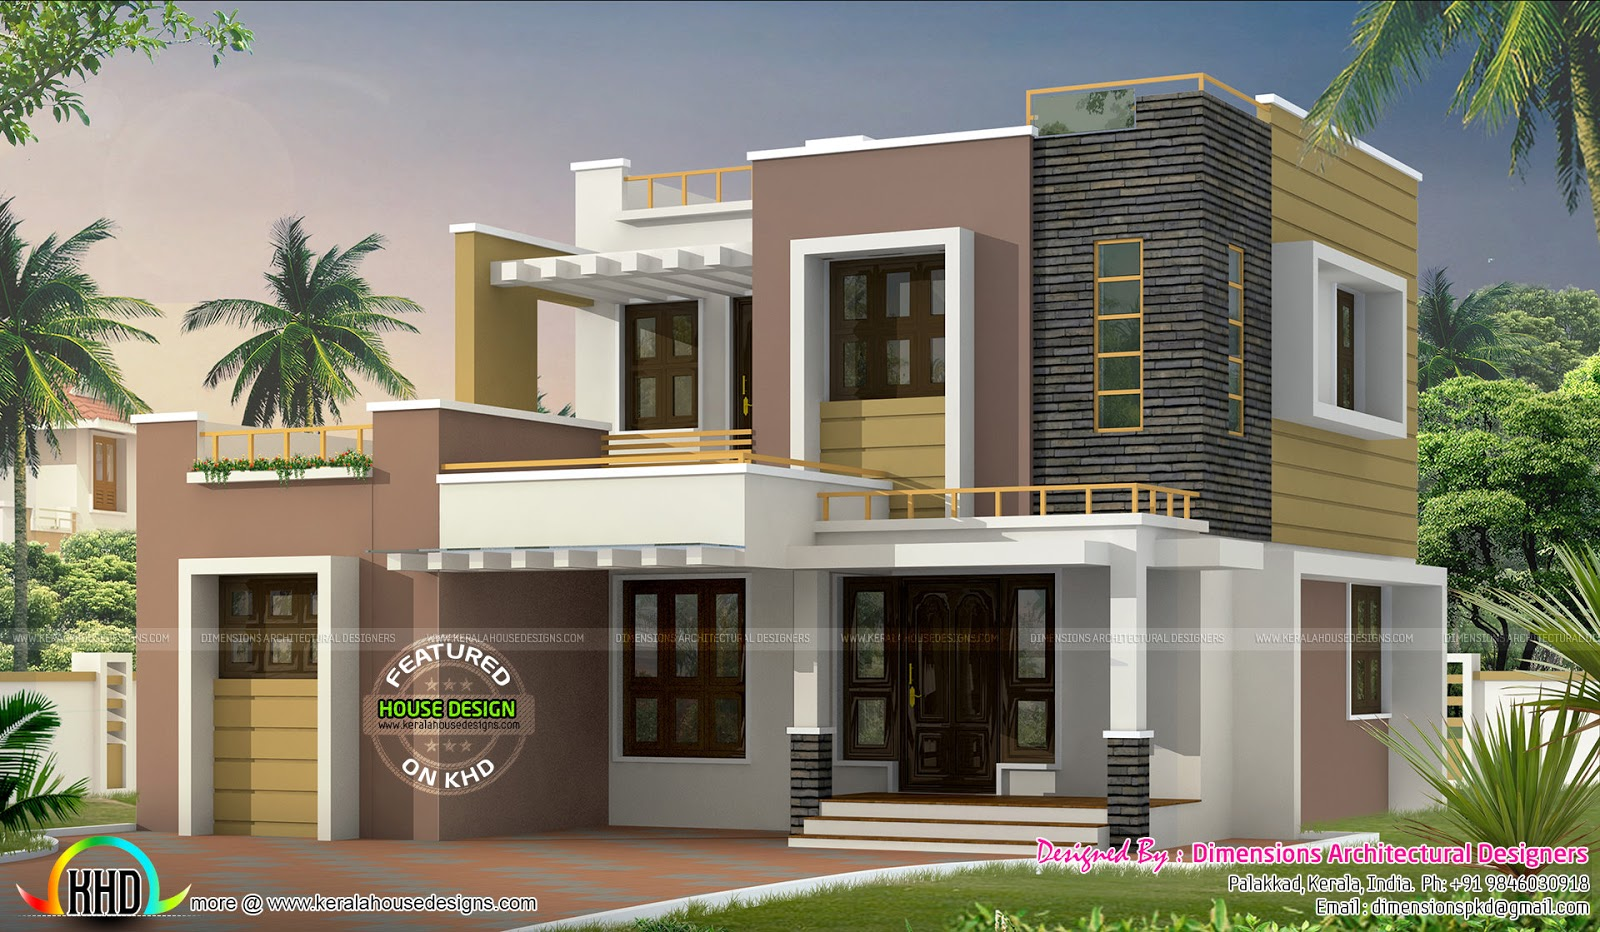 Kerala model house plans 1500 sq ft joy studio design for Kerala model house plans 1000 sq ft